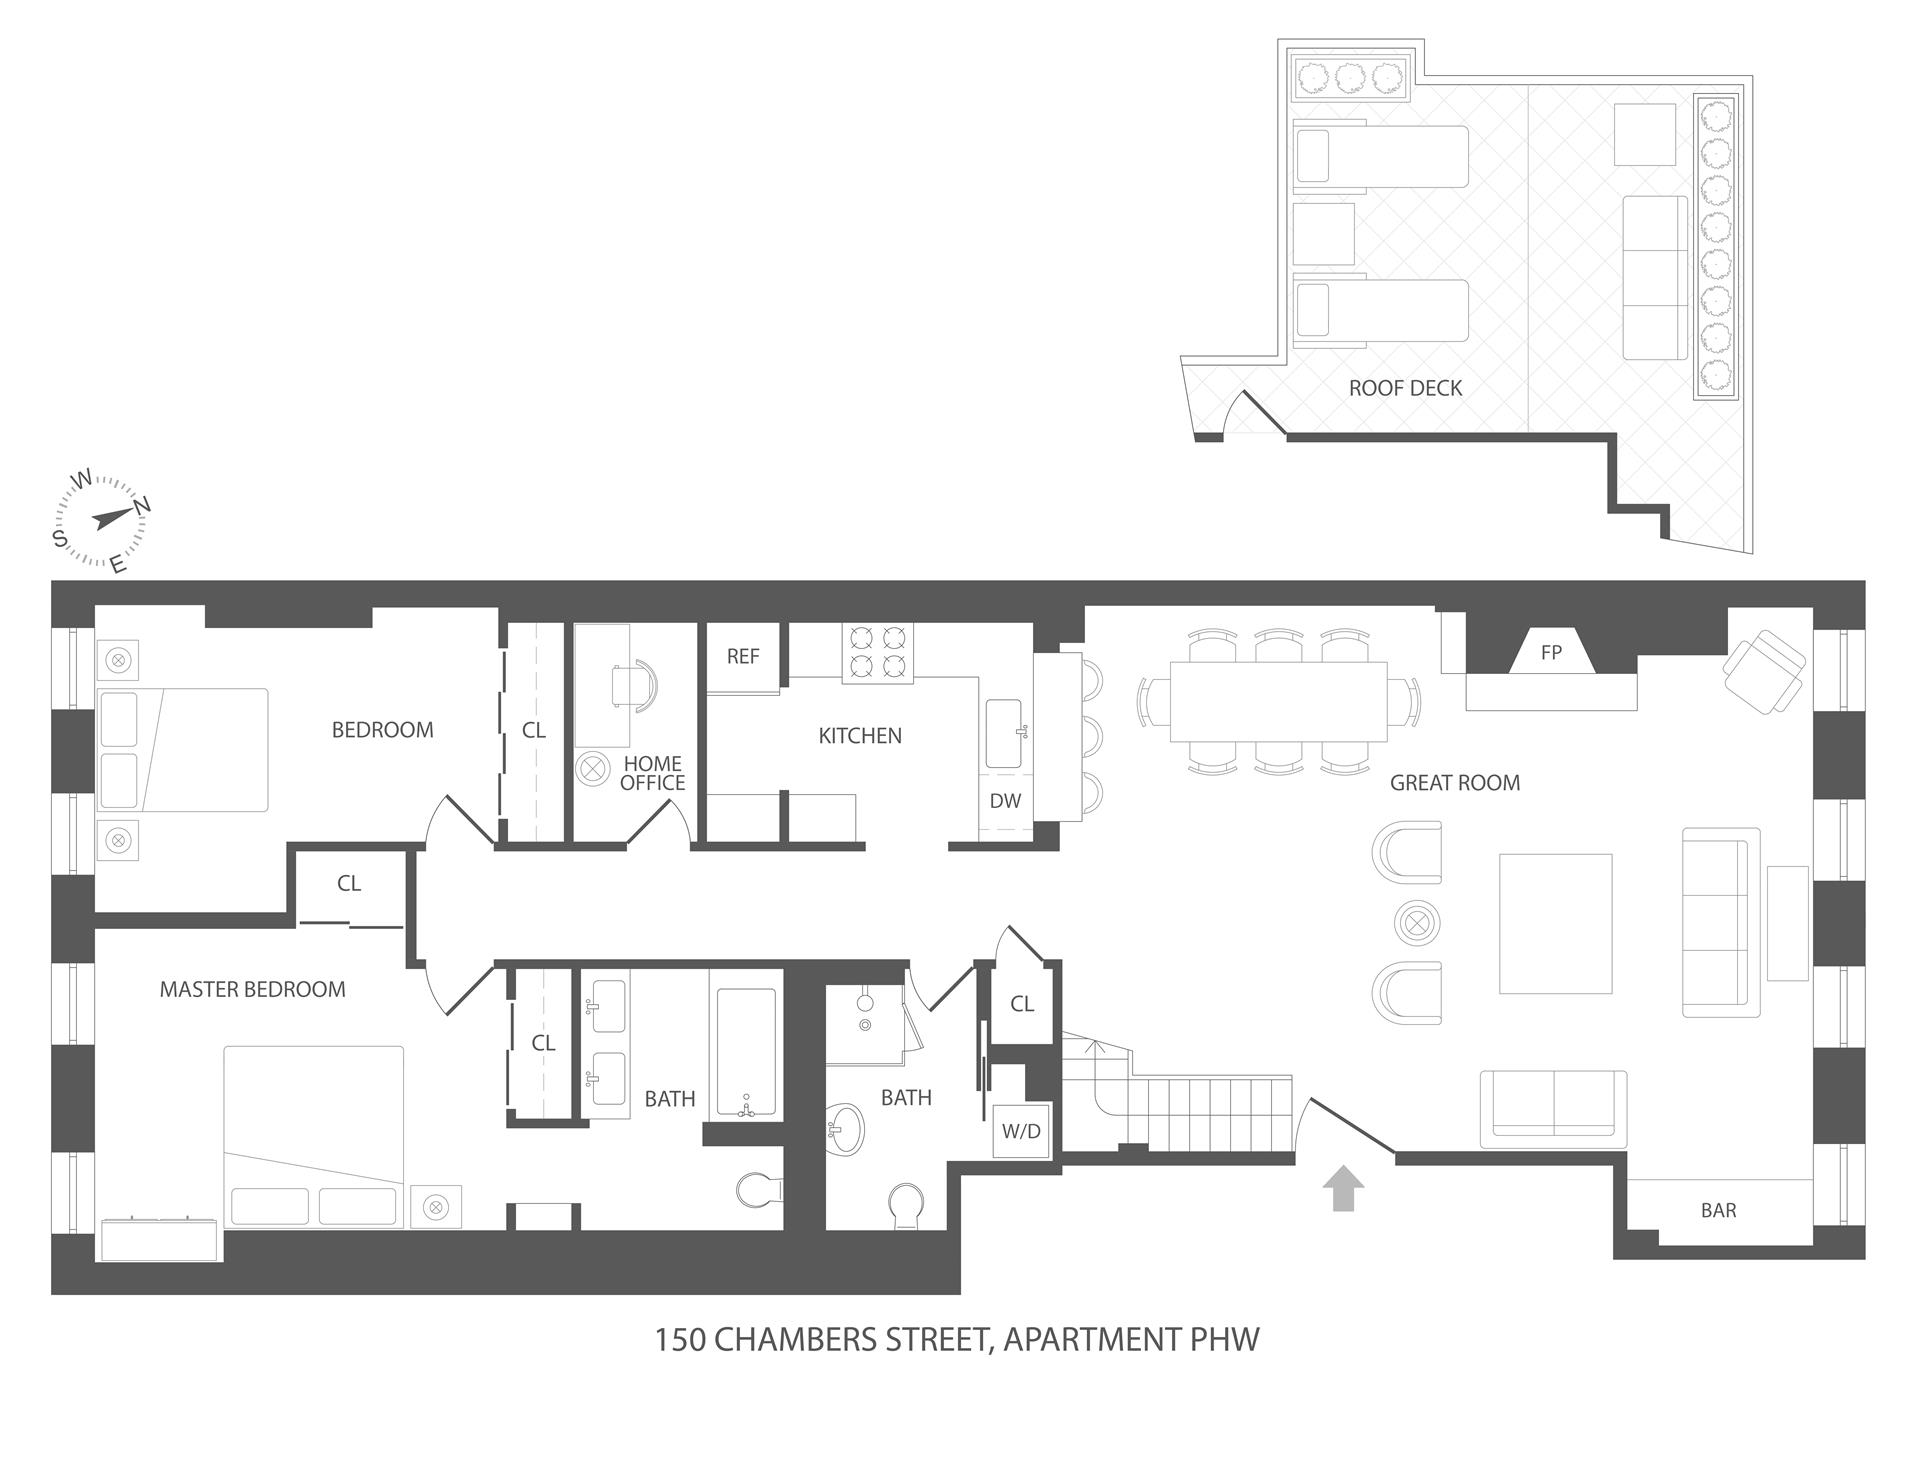 Floor plan of 150 Chambers St, PH5W - TriBeCa, New York